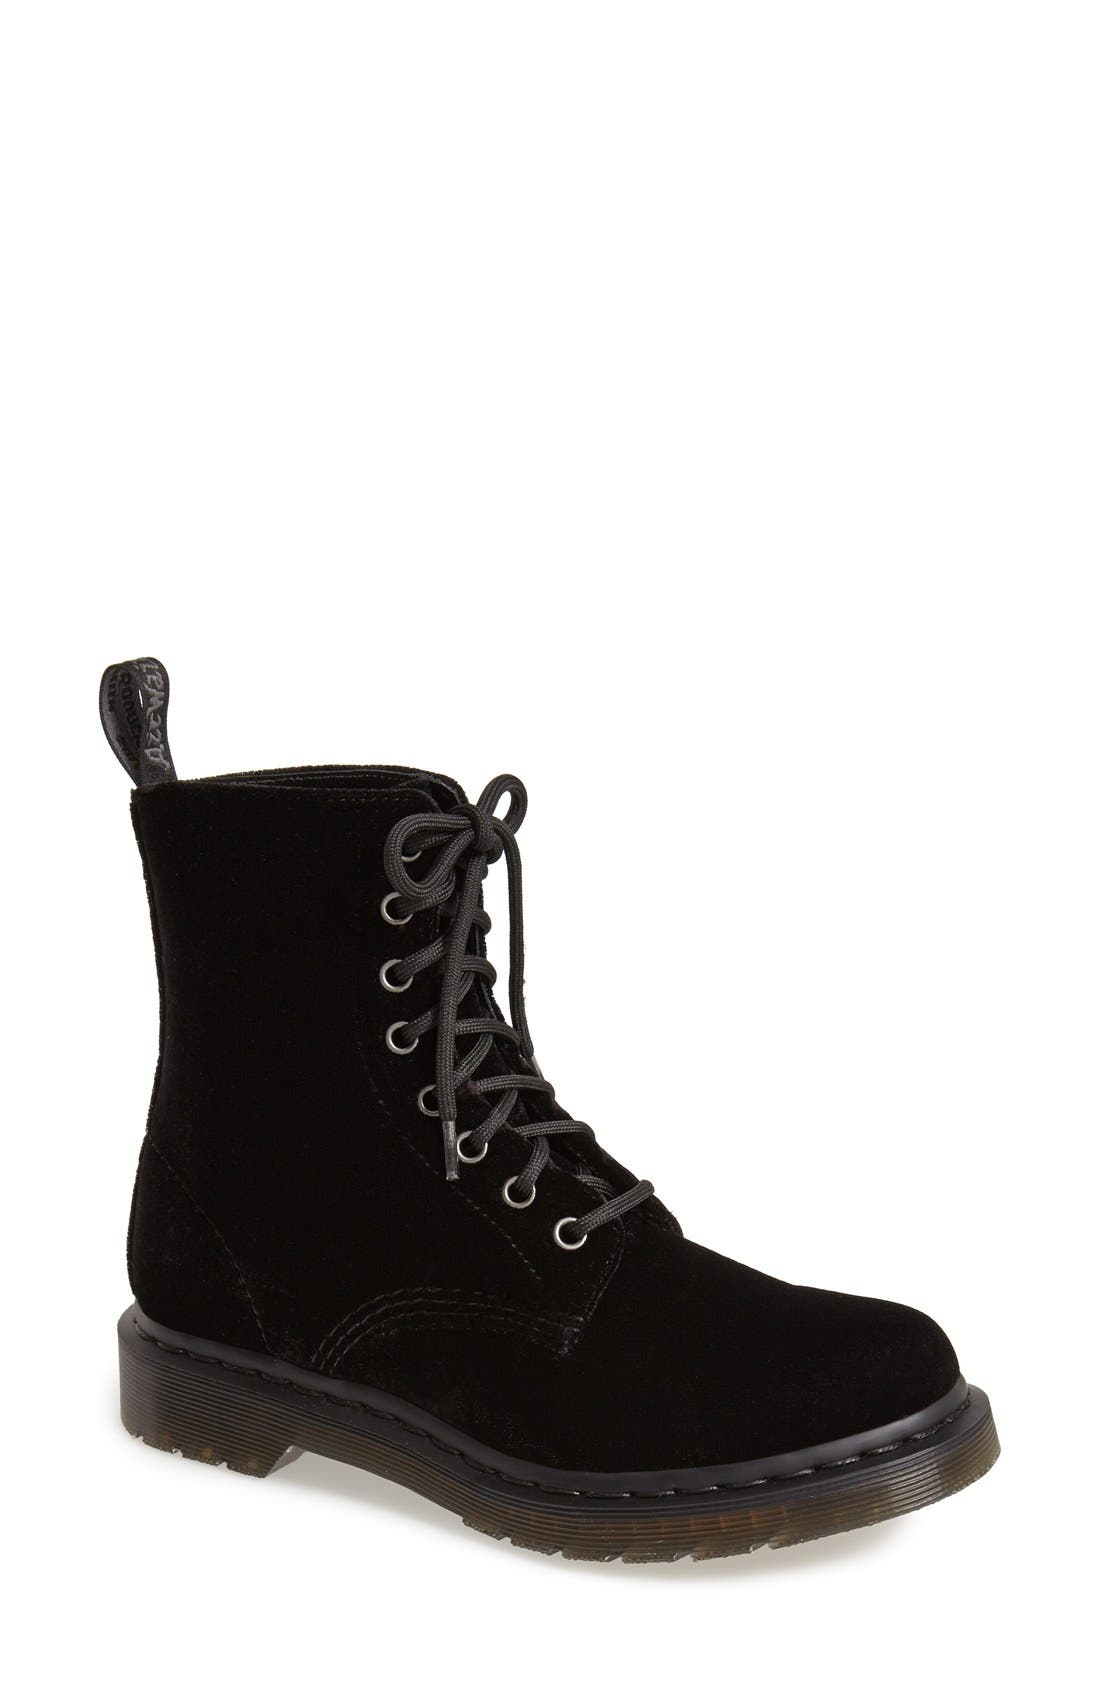 Alternate Image 1 Selected - Dr. Martens 'Page 8-Eye' Velvet Boot (Women)